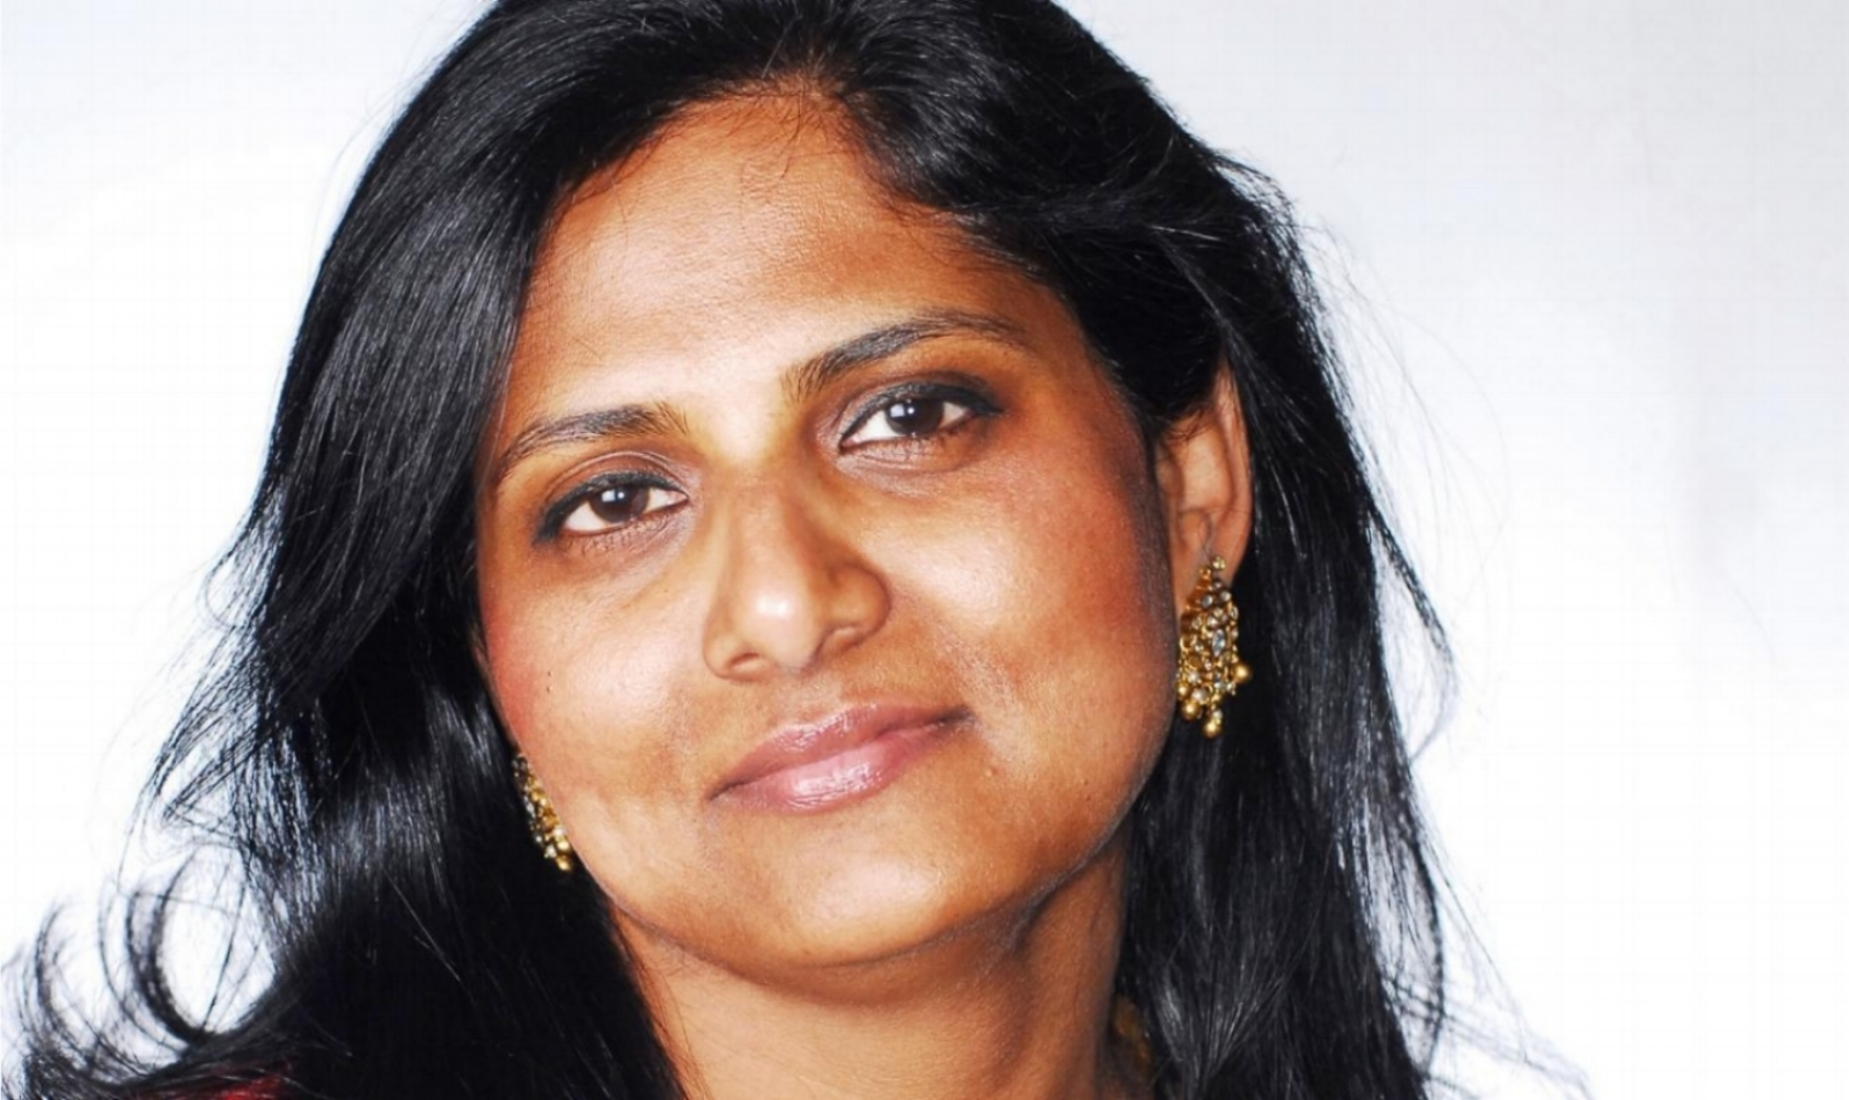 Priyamvada Natarajan  - Physicist  Professor in the Department of Astronomy and Physics at Yale University. She is a theoretical astrophysicist interested in cosmology, gravitational lensing and black hole physics.